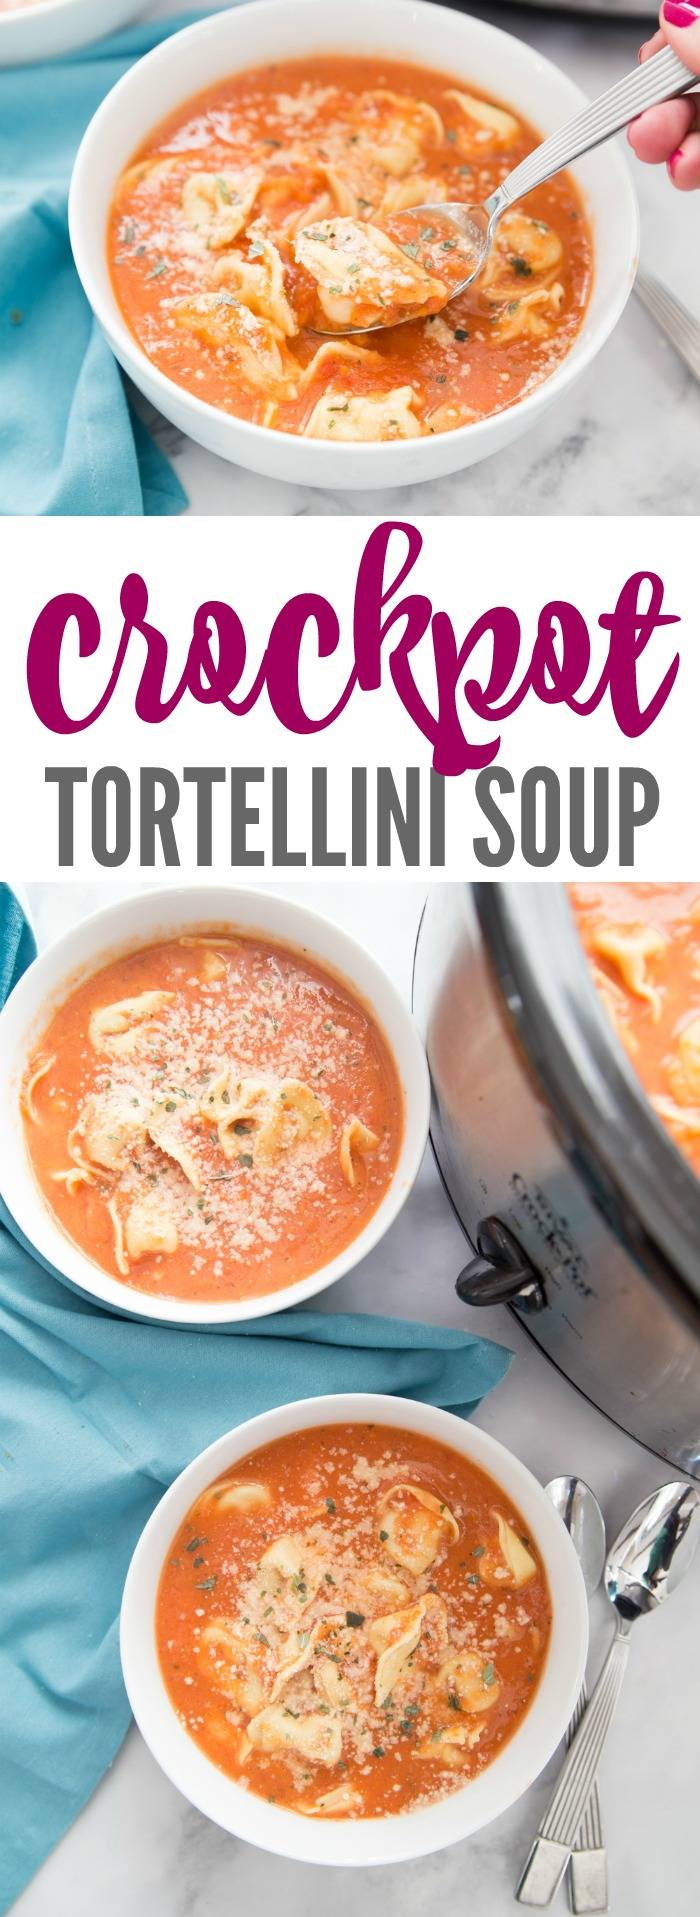 Easy Crockpot Tortellini Soup Recipe! Save time and money in the Kitchen with this Family Dinner Meal Idea and Slow Cooker Recipe That Everyone Will Love!